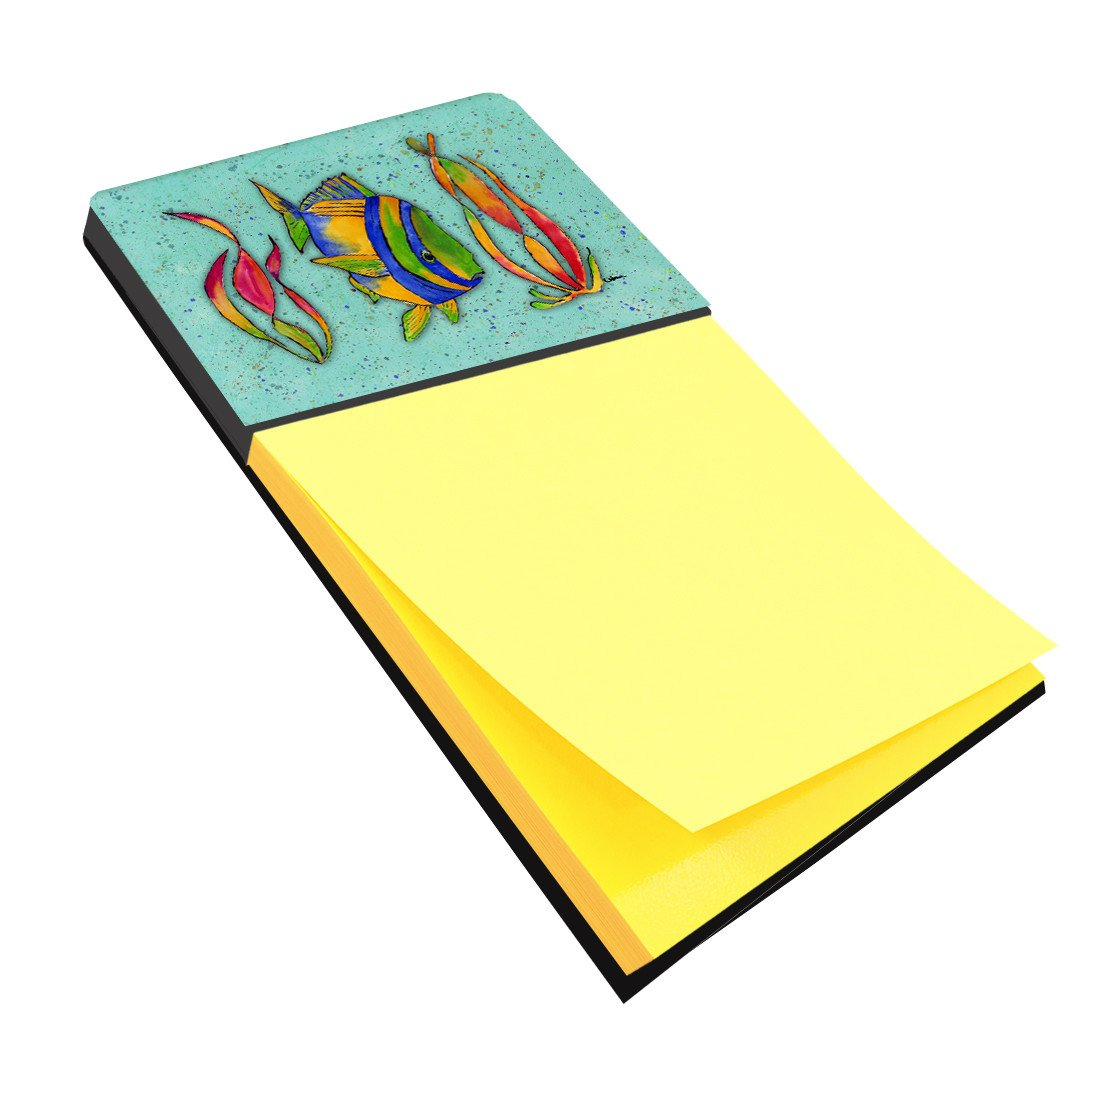 Tropical Fish on Teal Refiillable Sticky Note Holder or Postit Note Dispenser 8569SN by Caroline's Treasures